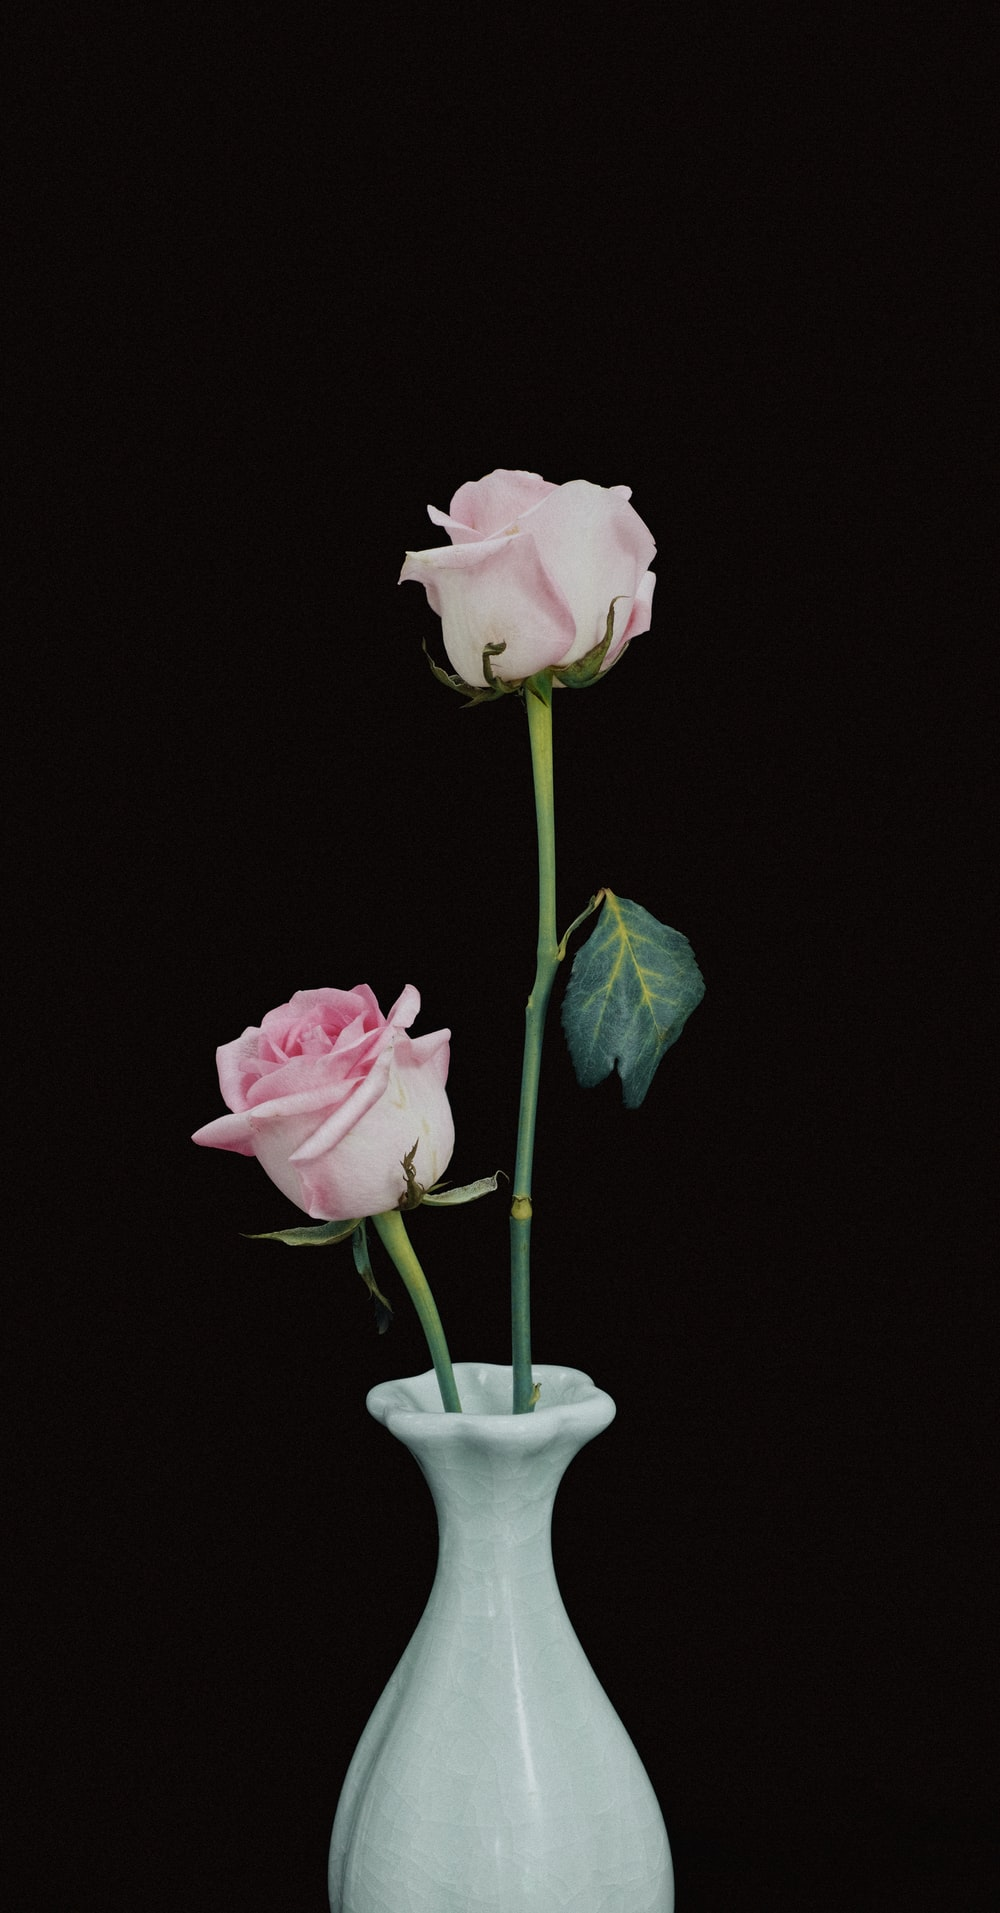 two pink rose flowers in vase